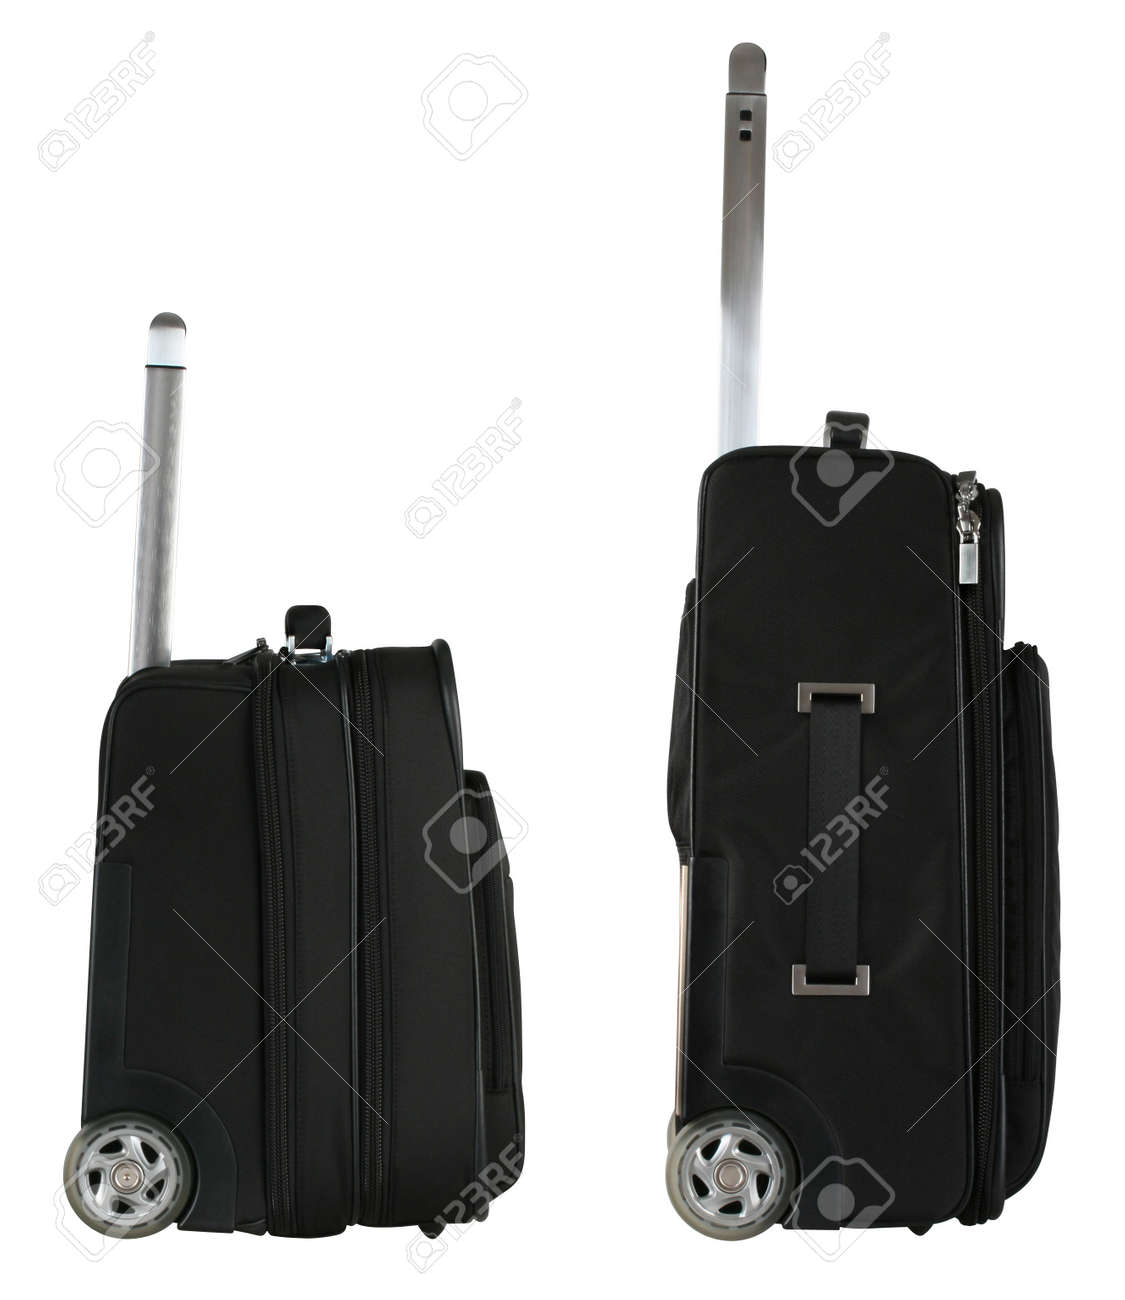 Black Travel Bag From Side View Stock Photo, Picture And Royalty ...